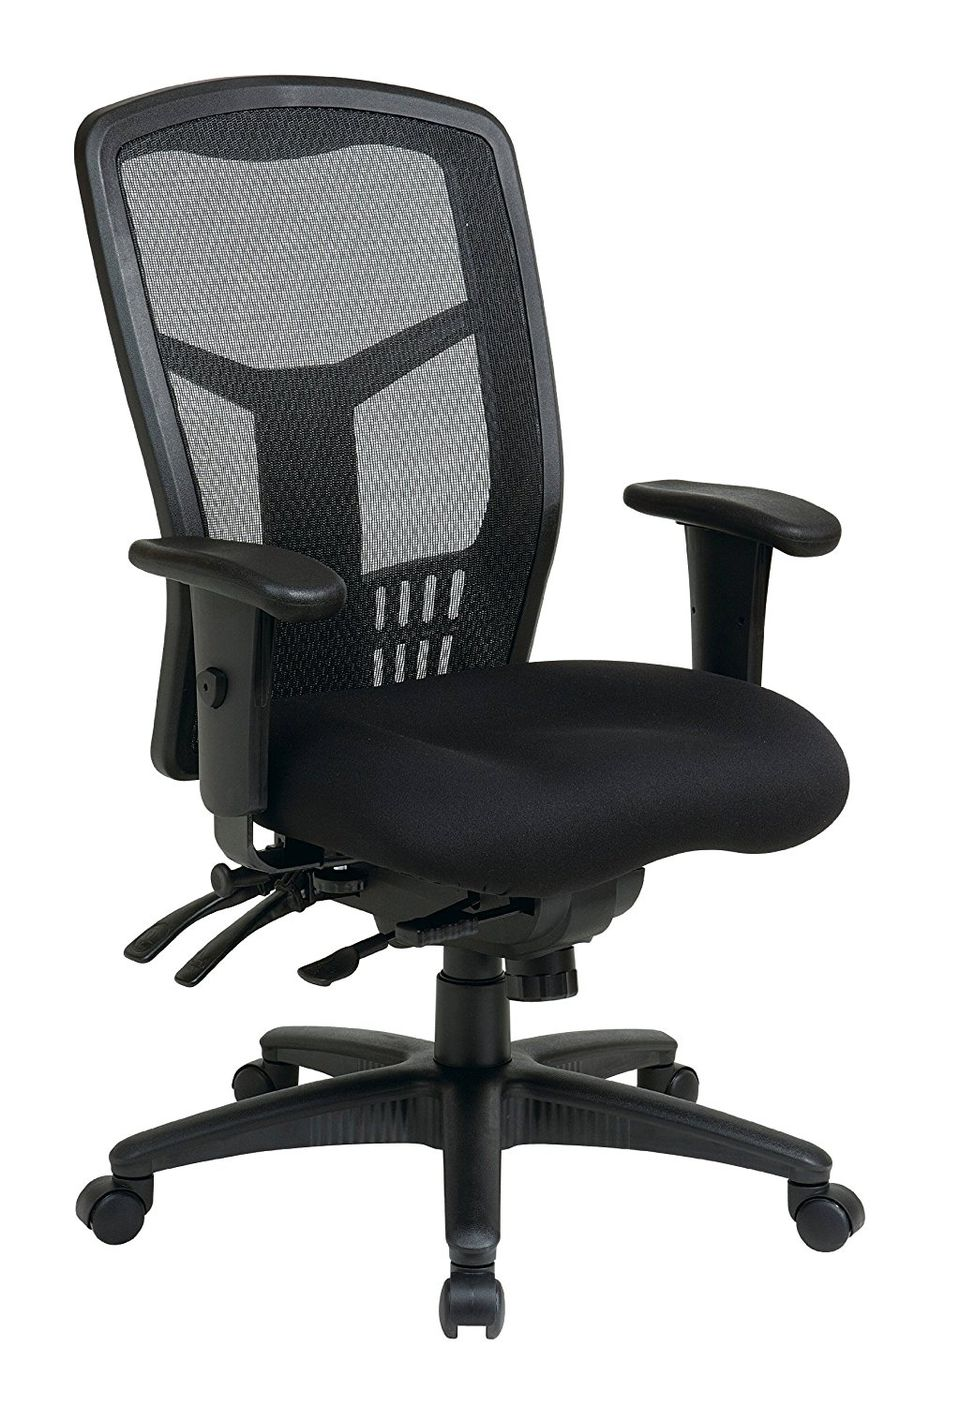 various for comfortable purposes most the gaming desk chair